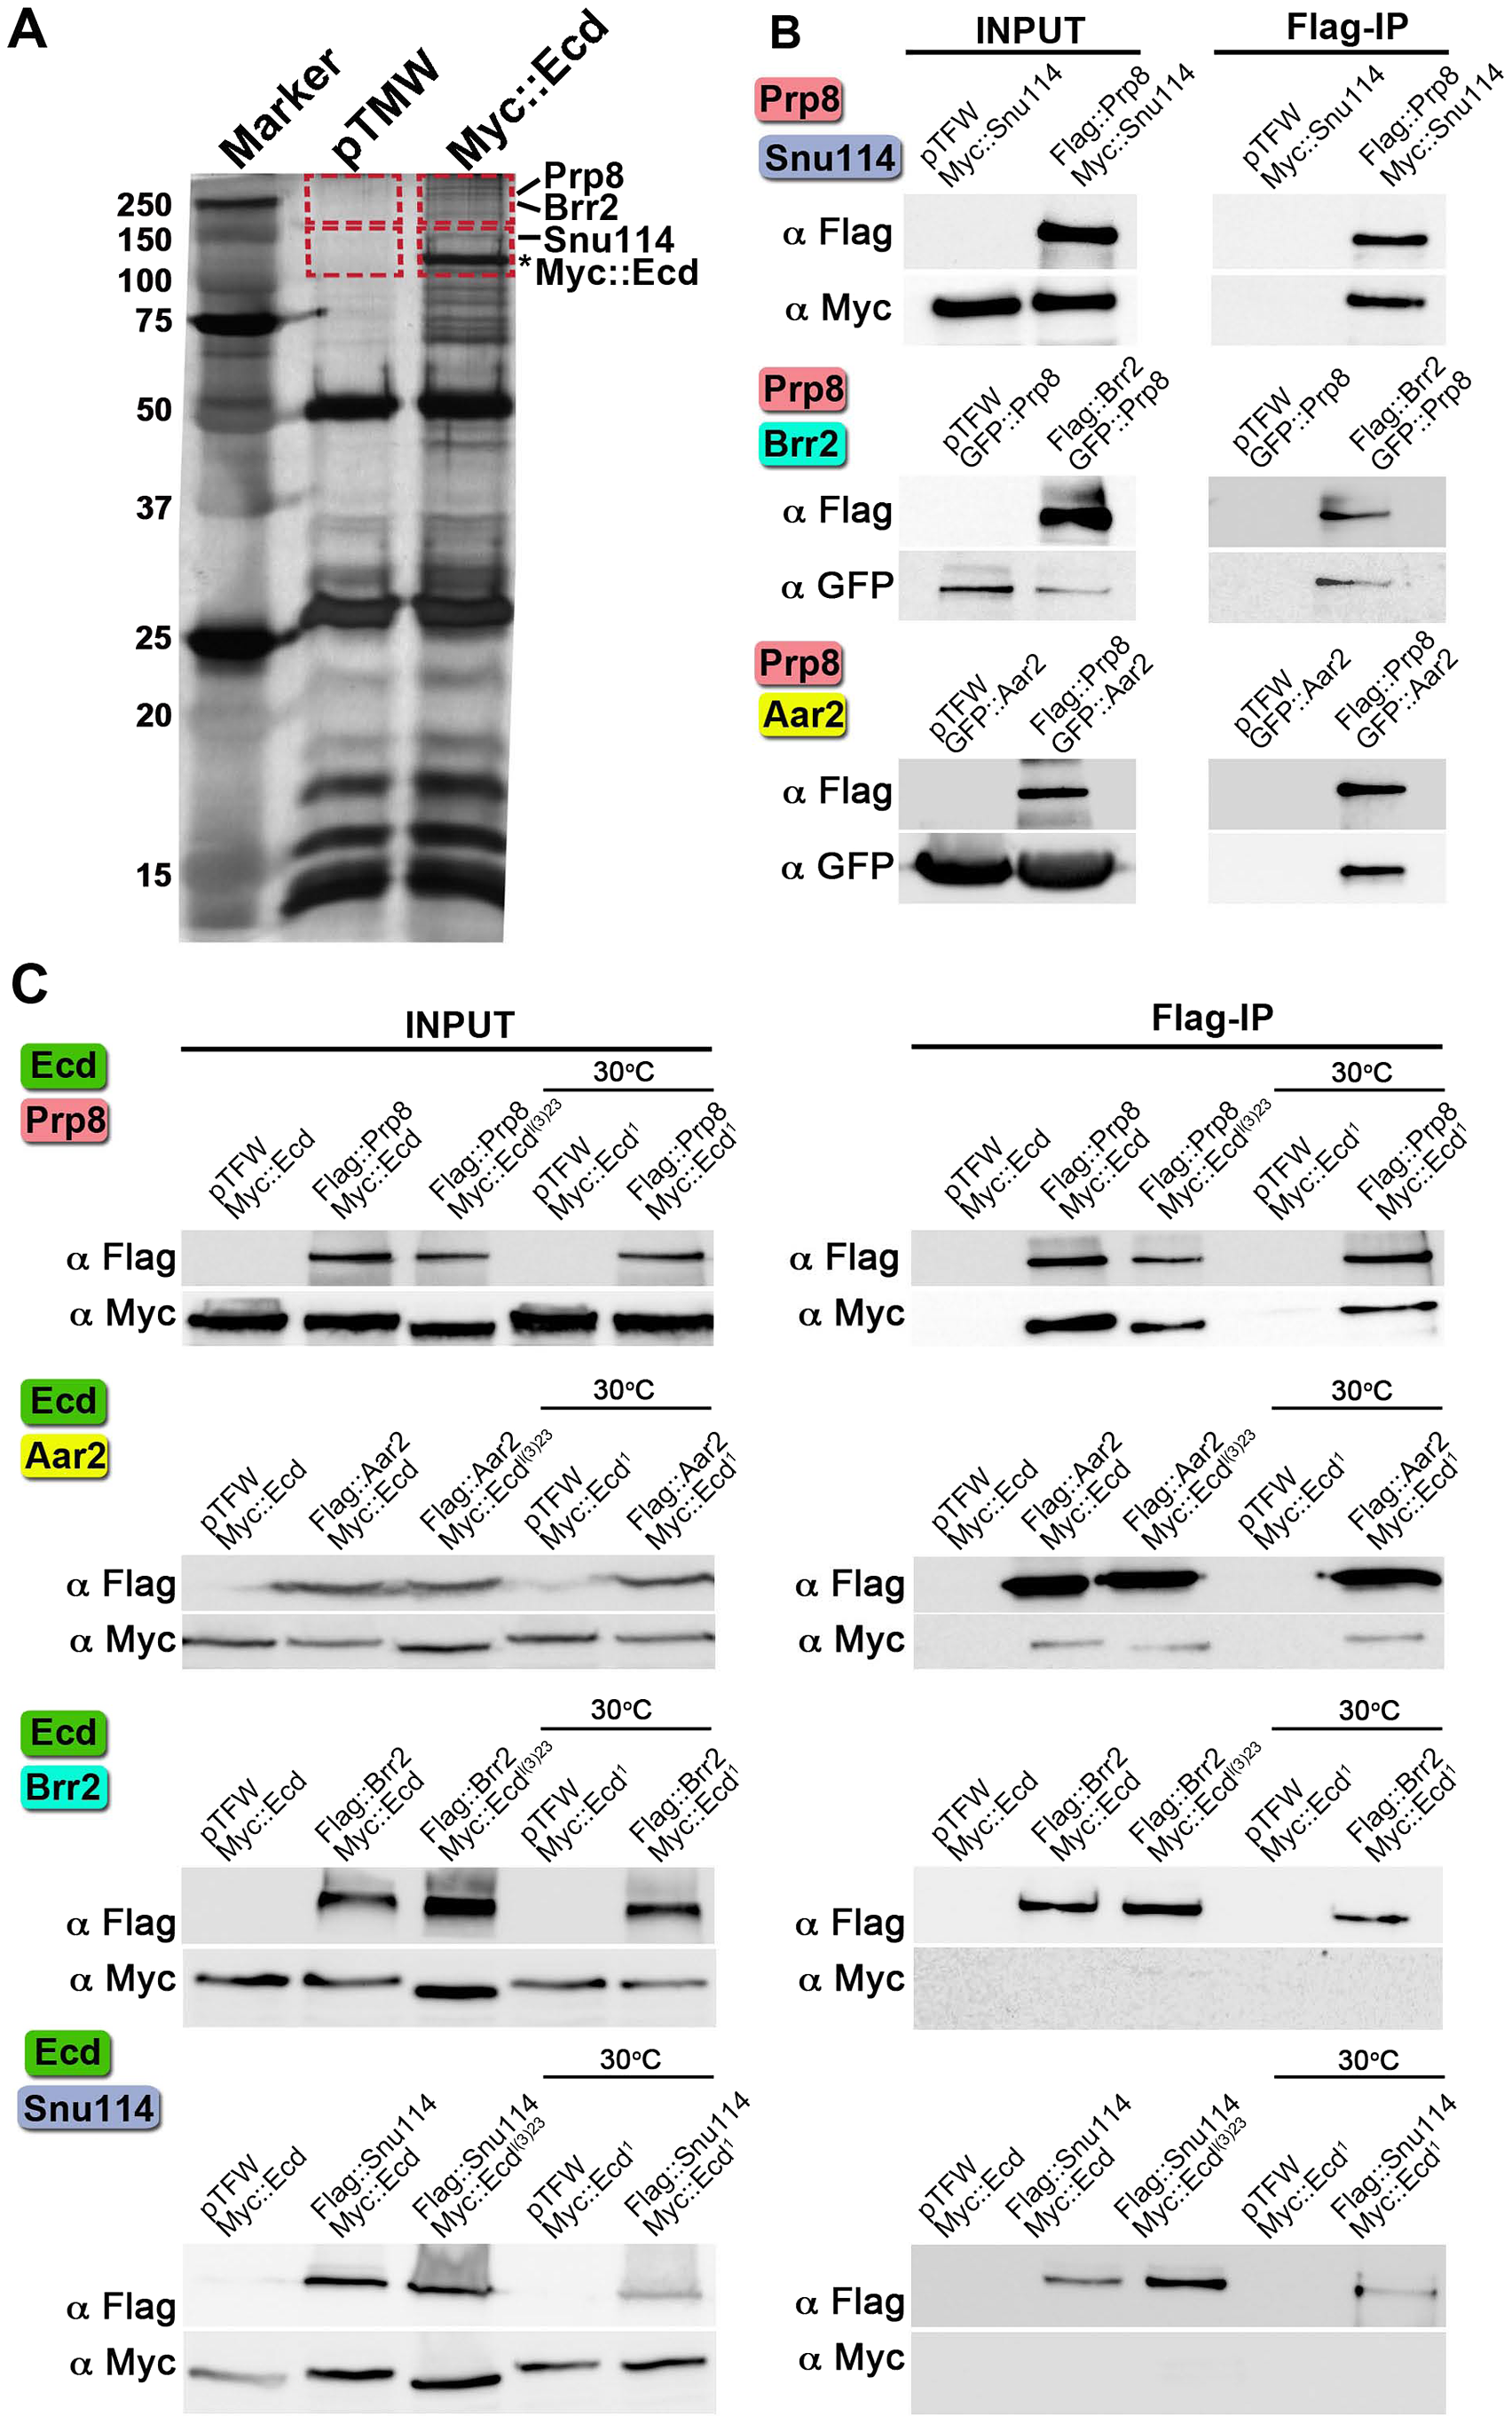 Interactions of Ecd with proteins of the U5 snRNP complex.